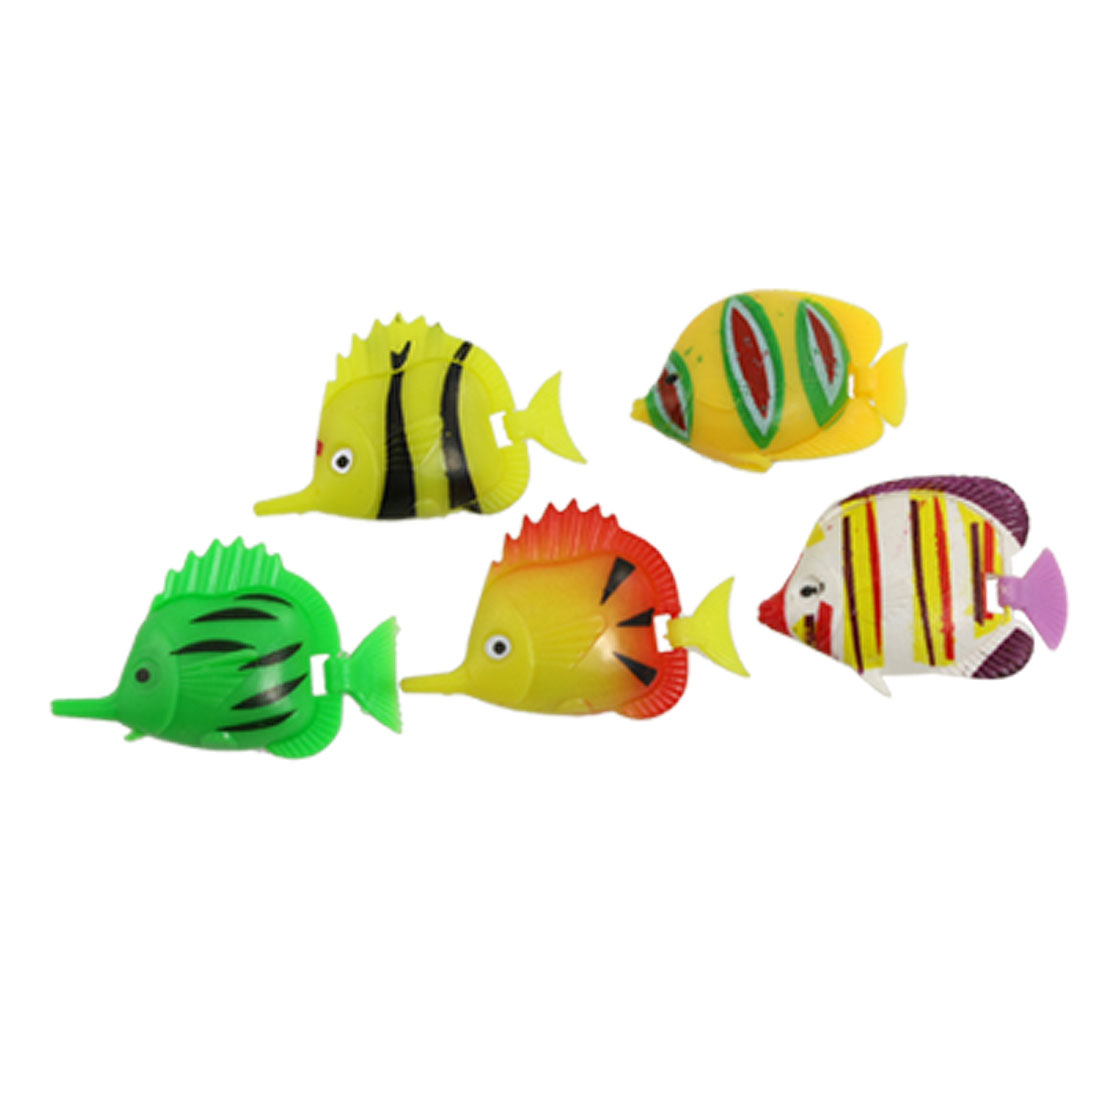 5 Pcs Manmade Plastic Swimming Ornament Fish for Aquarium